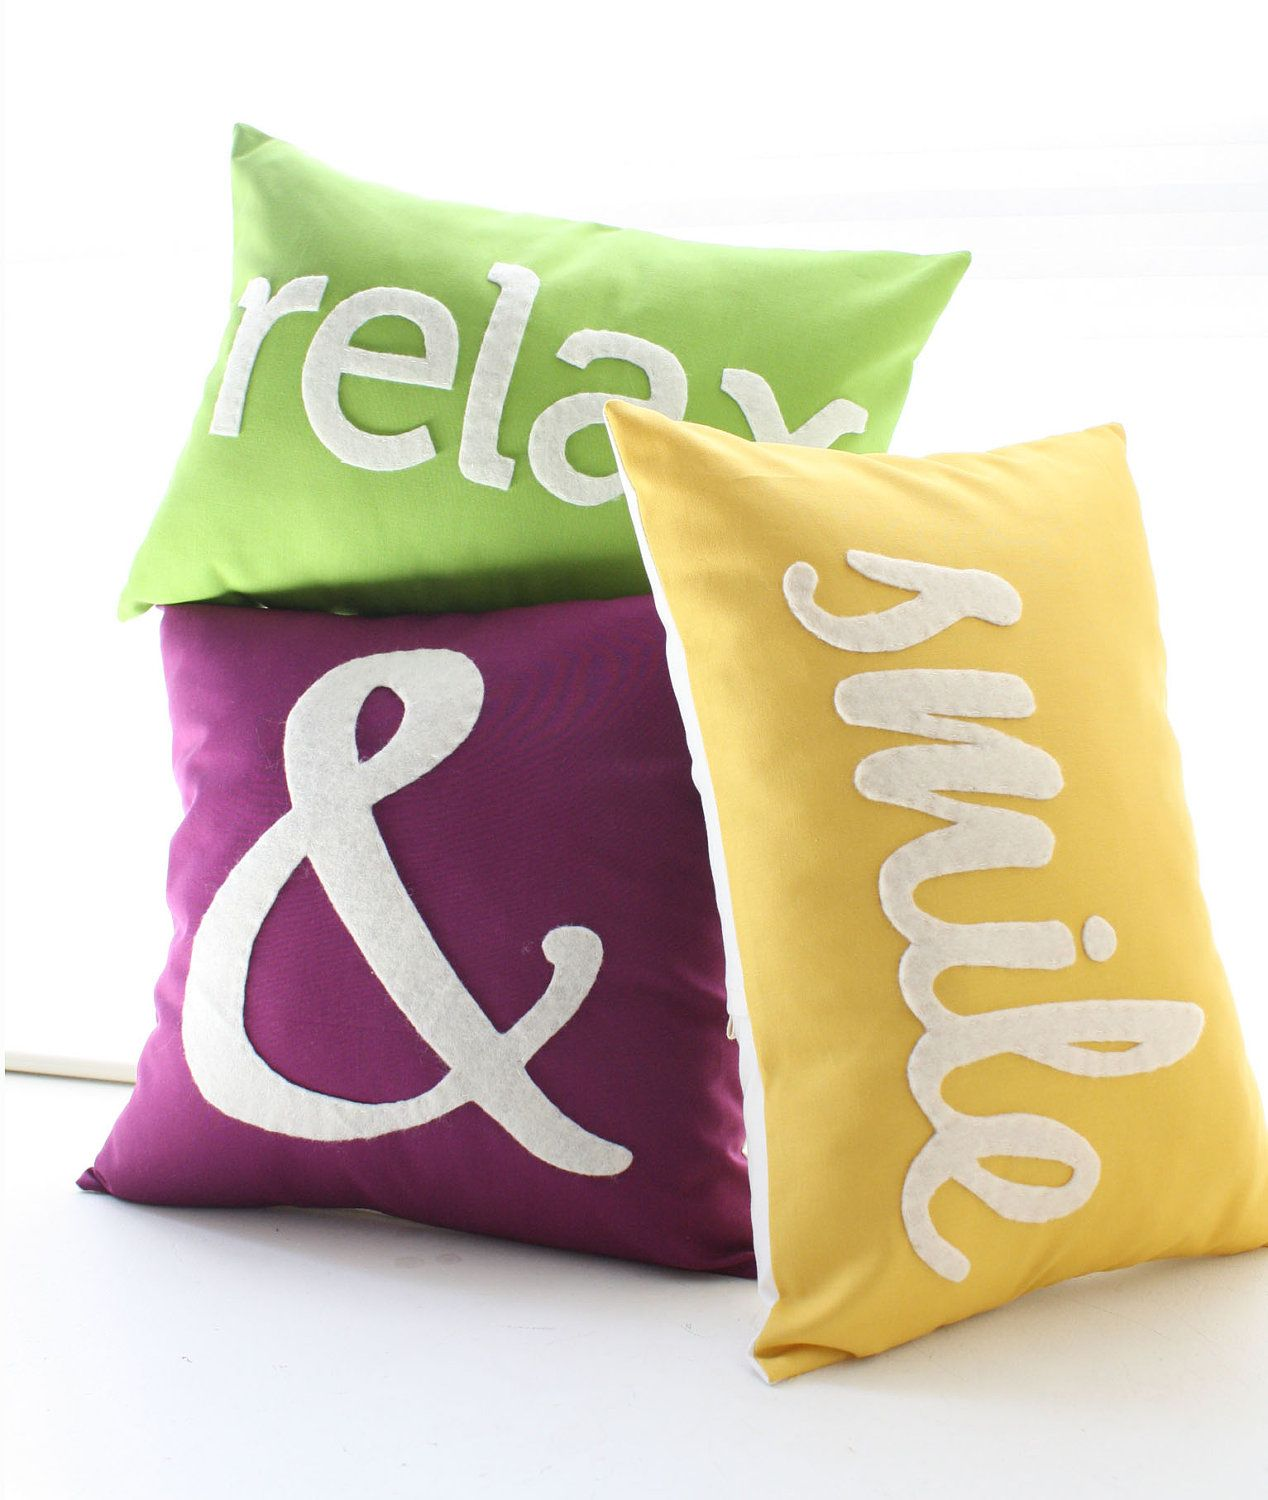 Ampersand Pillow - You Choose the Color. $35.00, via Etsy.